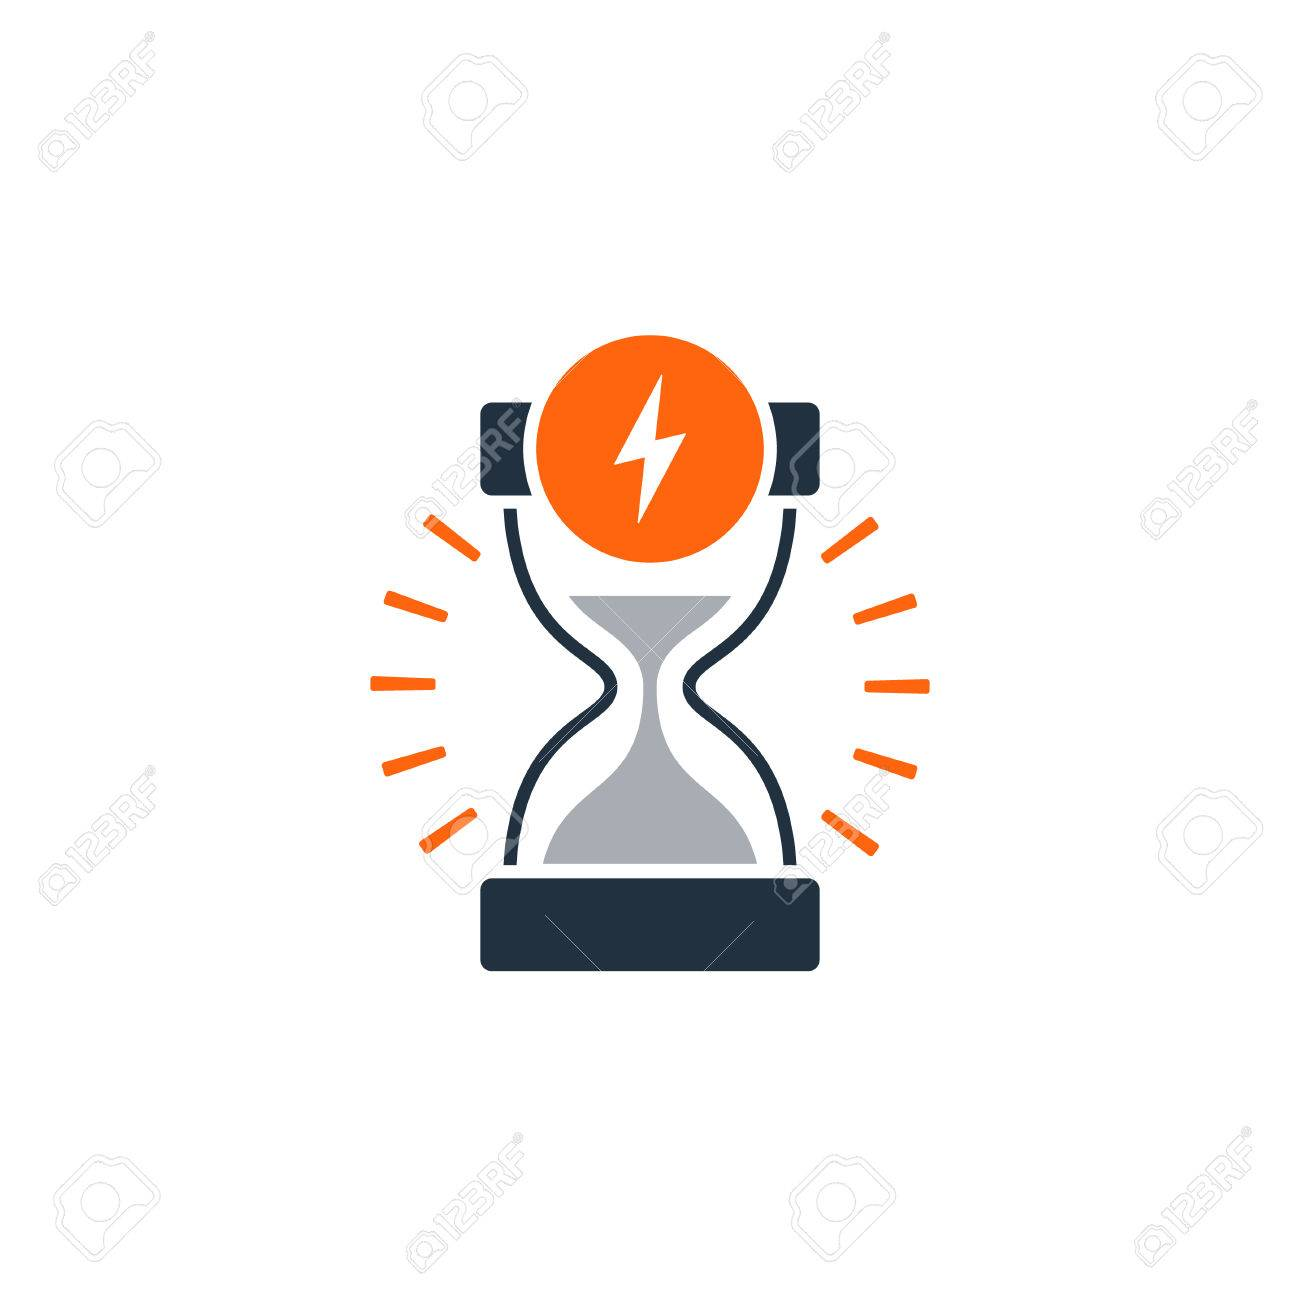 Fast delivery time concept icon. Satisfaction services. Flat design illustration - 68500833